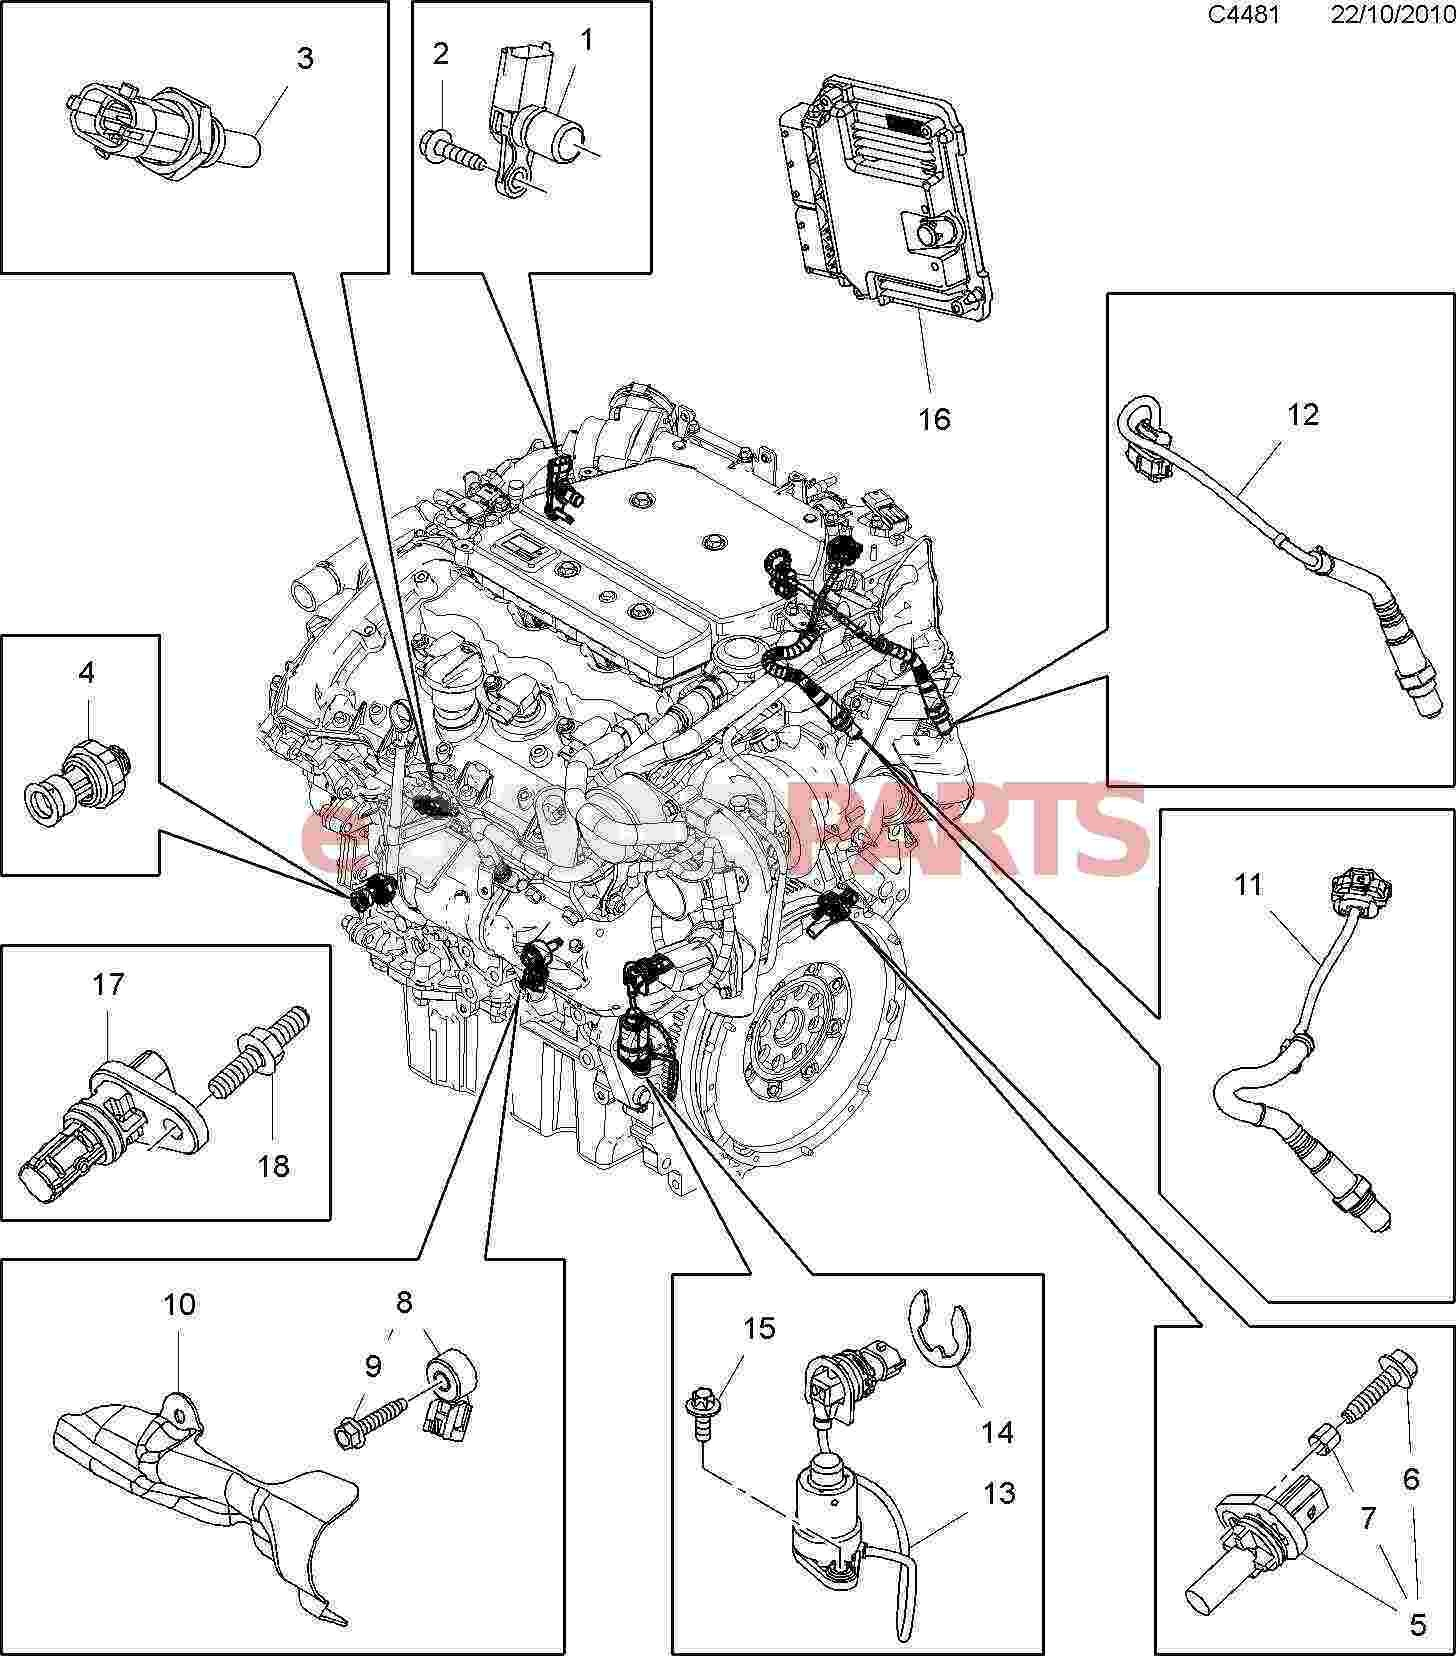 86 Cj7 Engine Wiring Library Jeep Diagram Saab 9 3 Auto Electrical 2008 Dodge Avenger